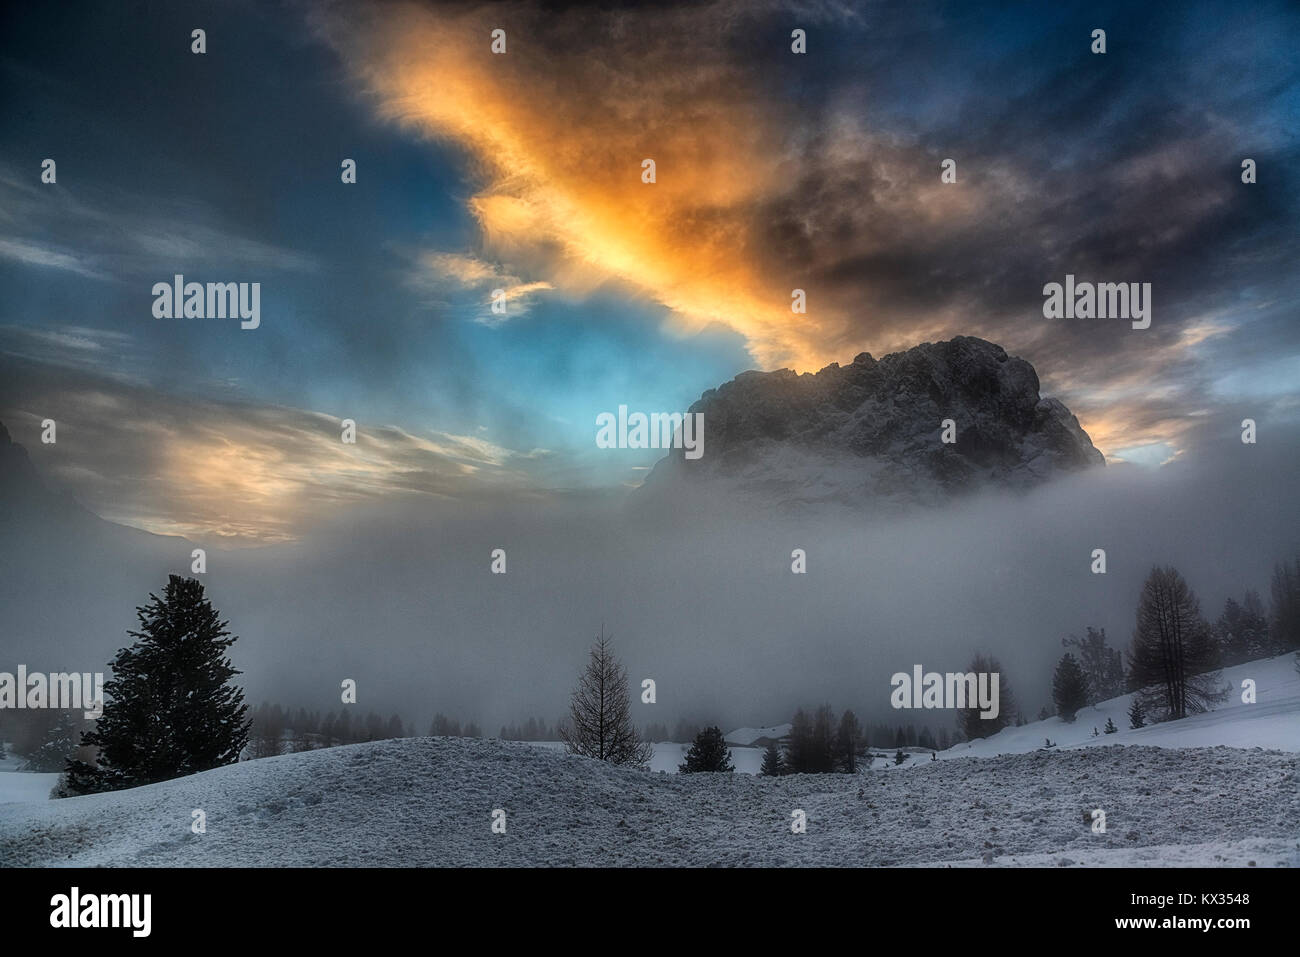 misty hills and sunset over the dolomites mountains in a cold winter with clouds in the blue sky - Stock Image